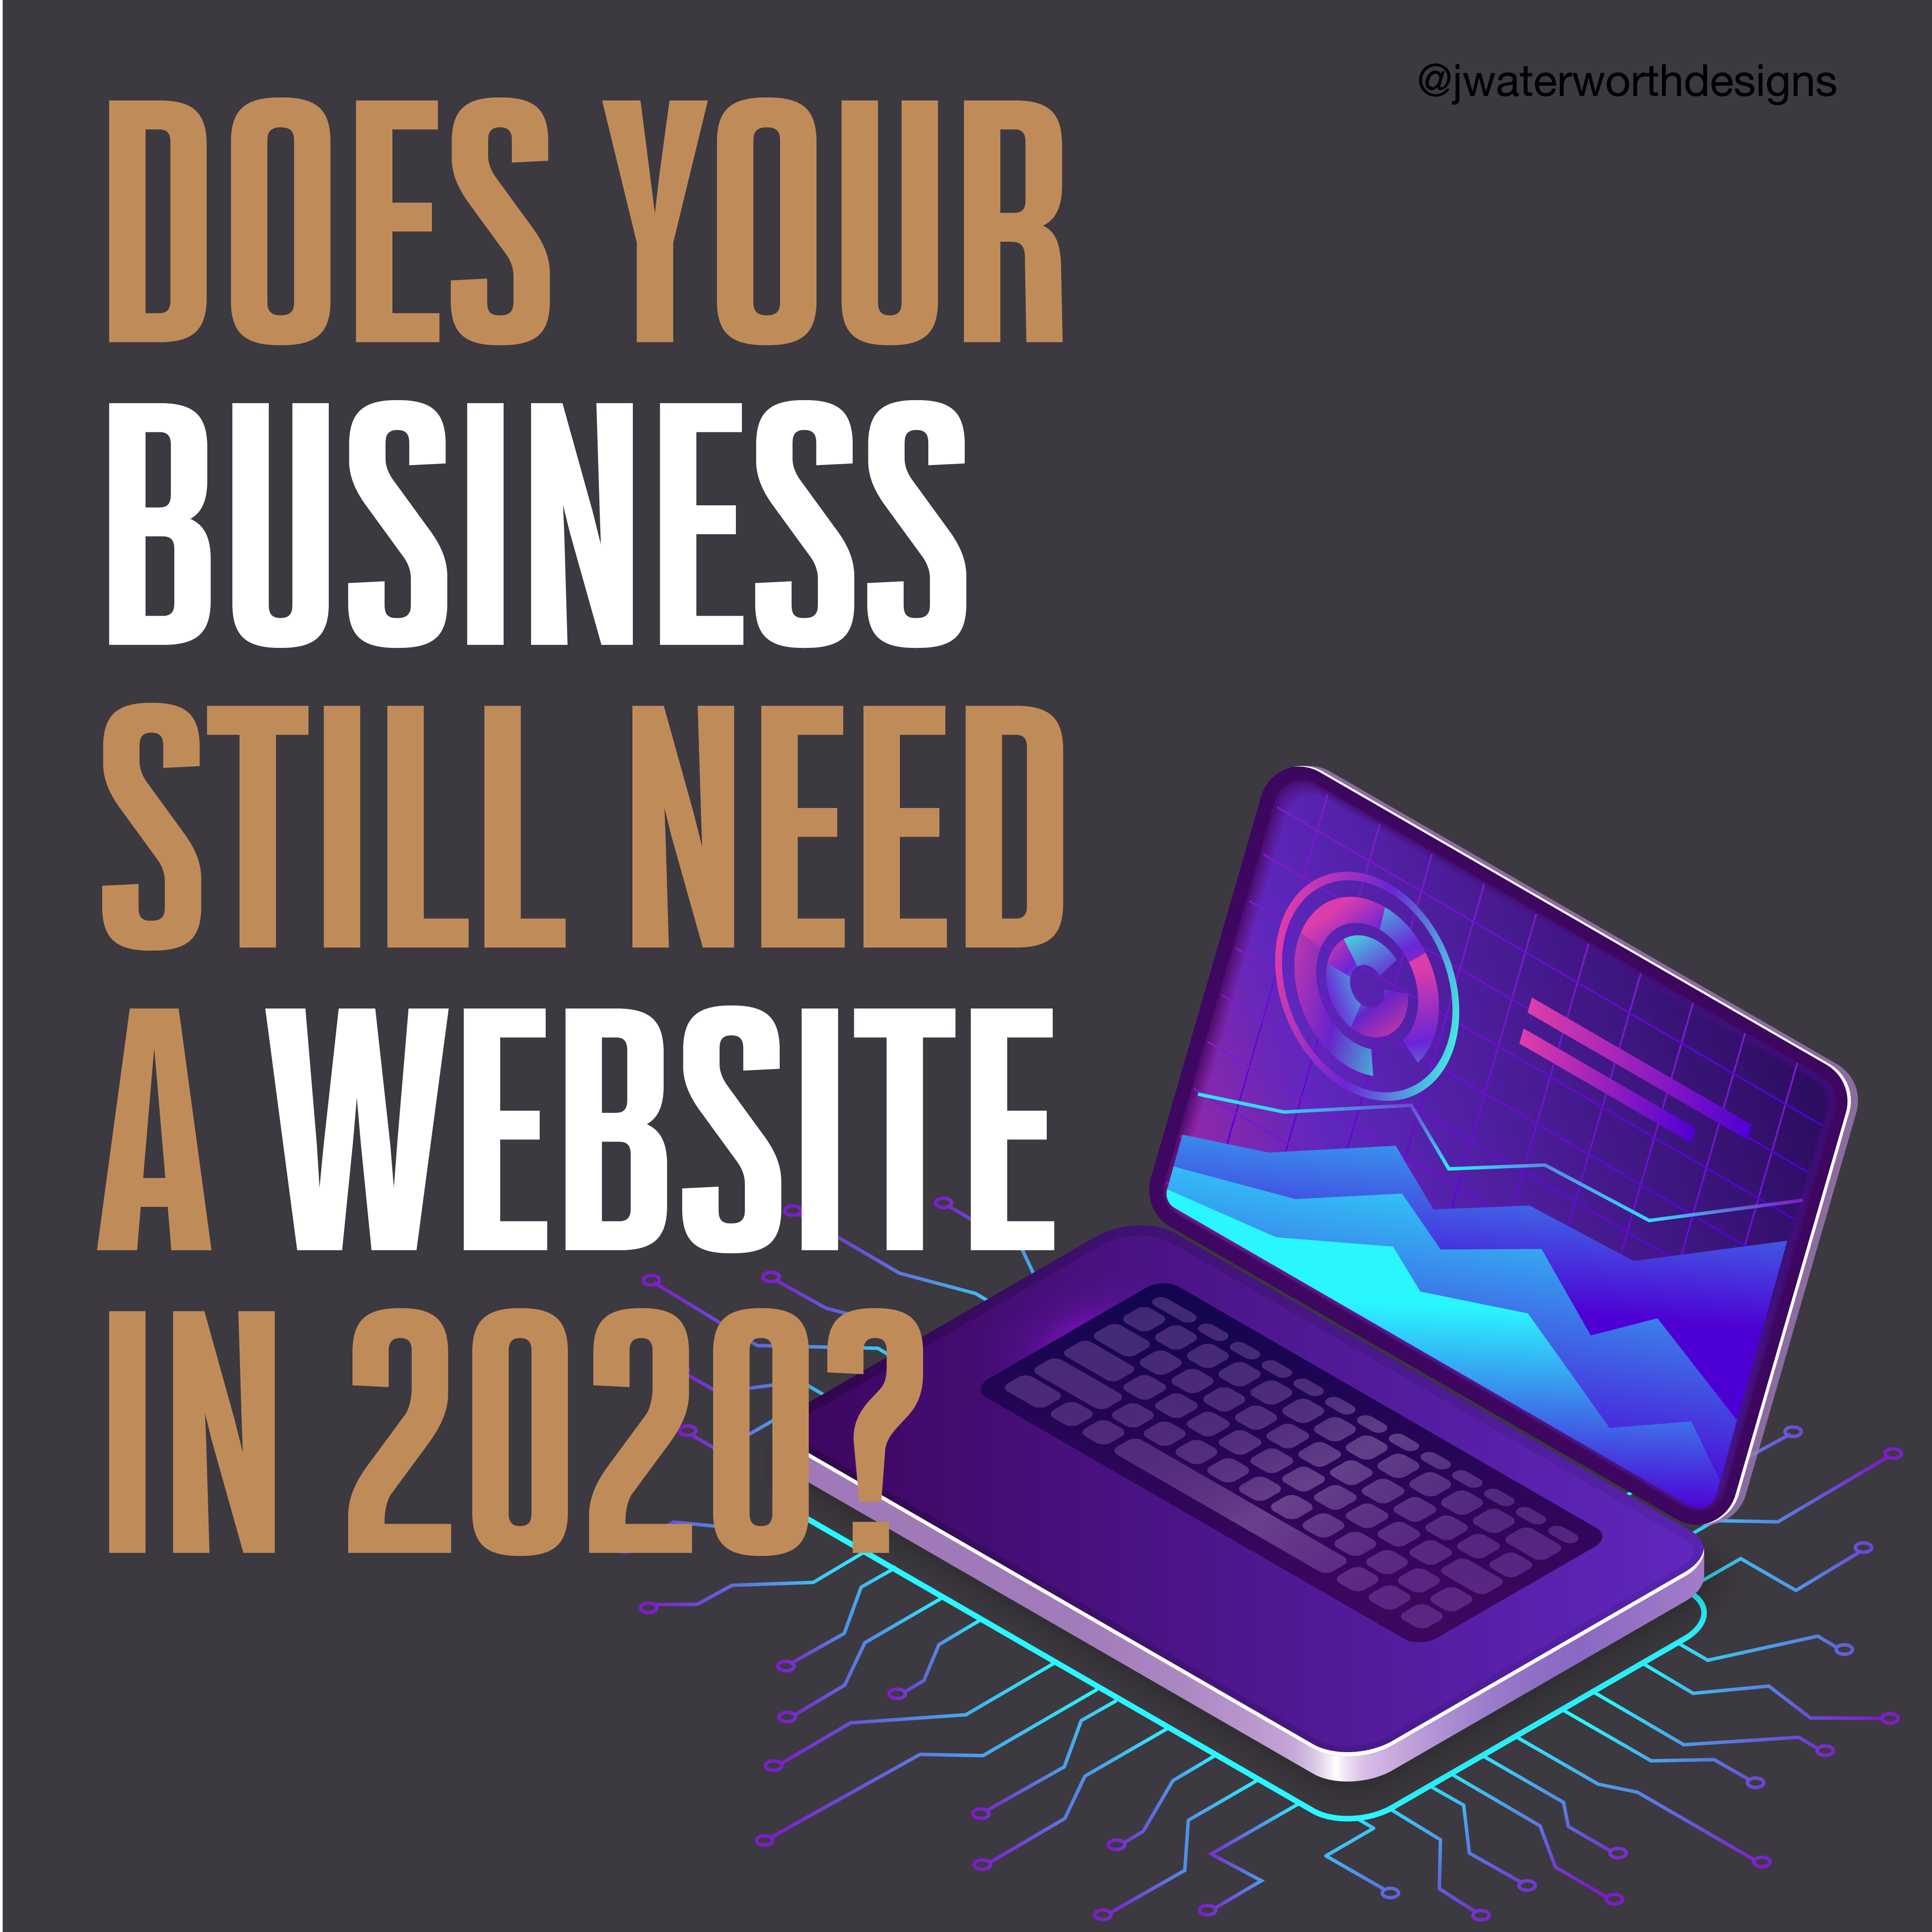 Does your Small Business still need a website in 2020?